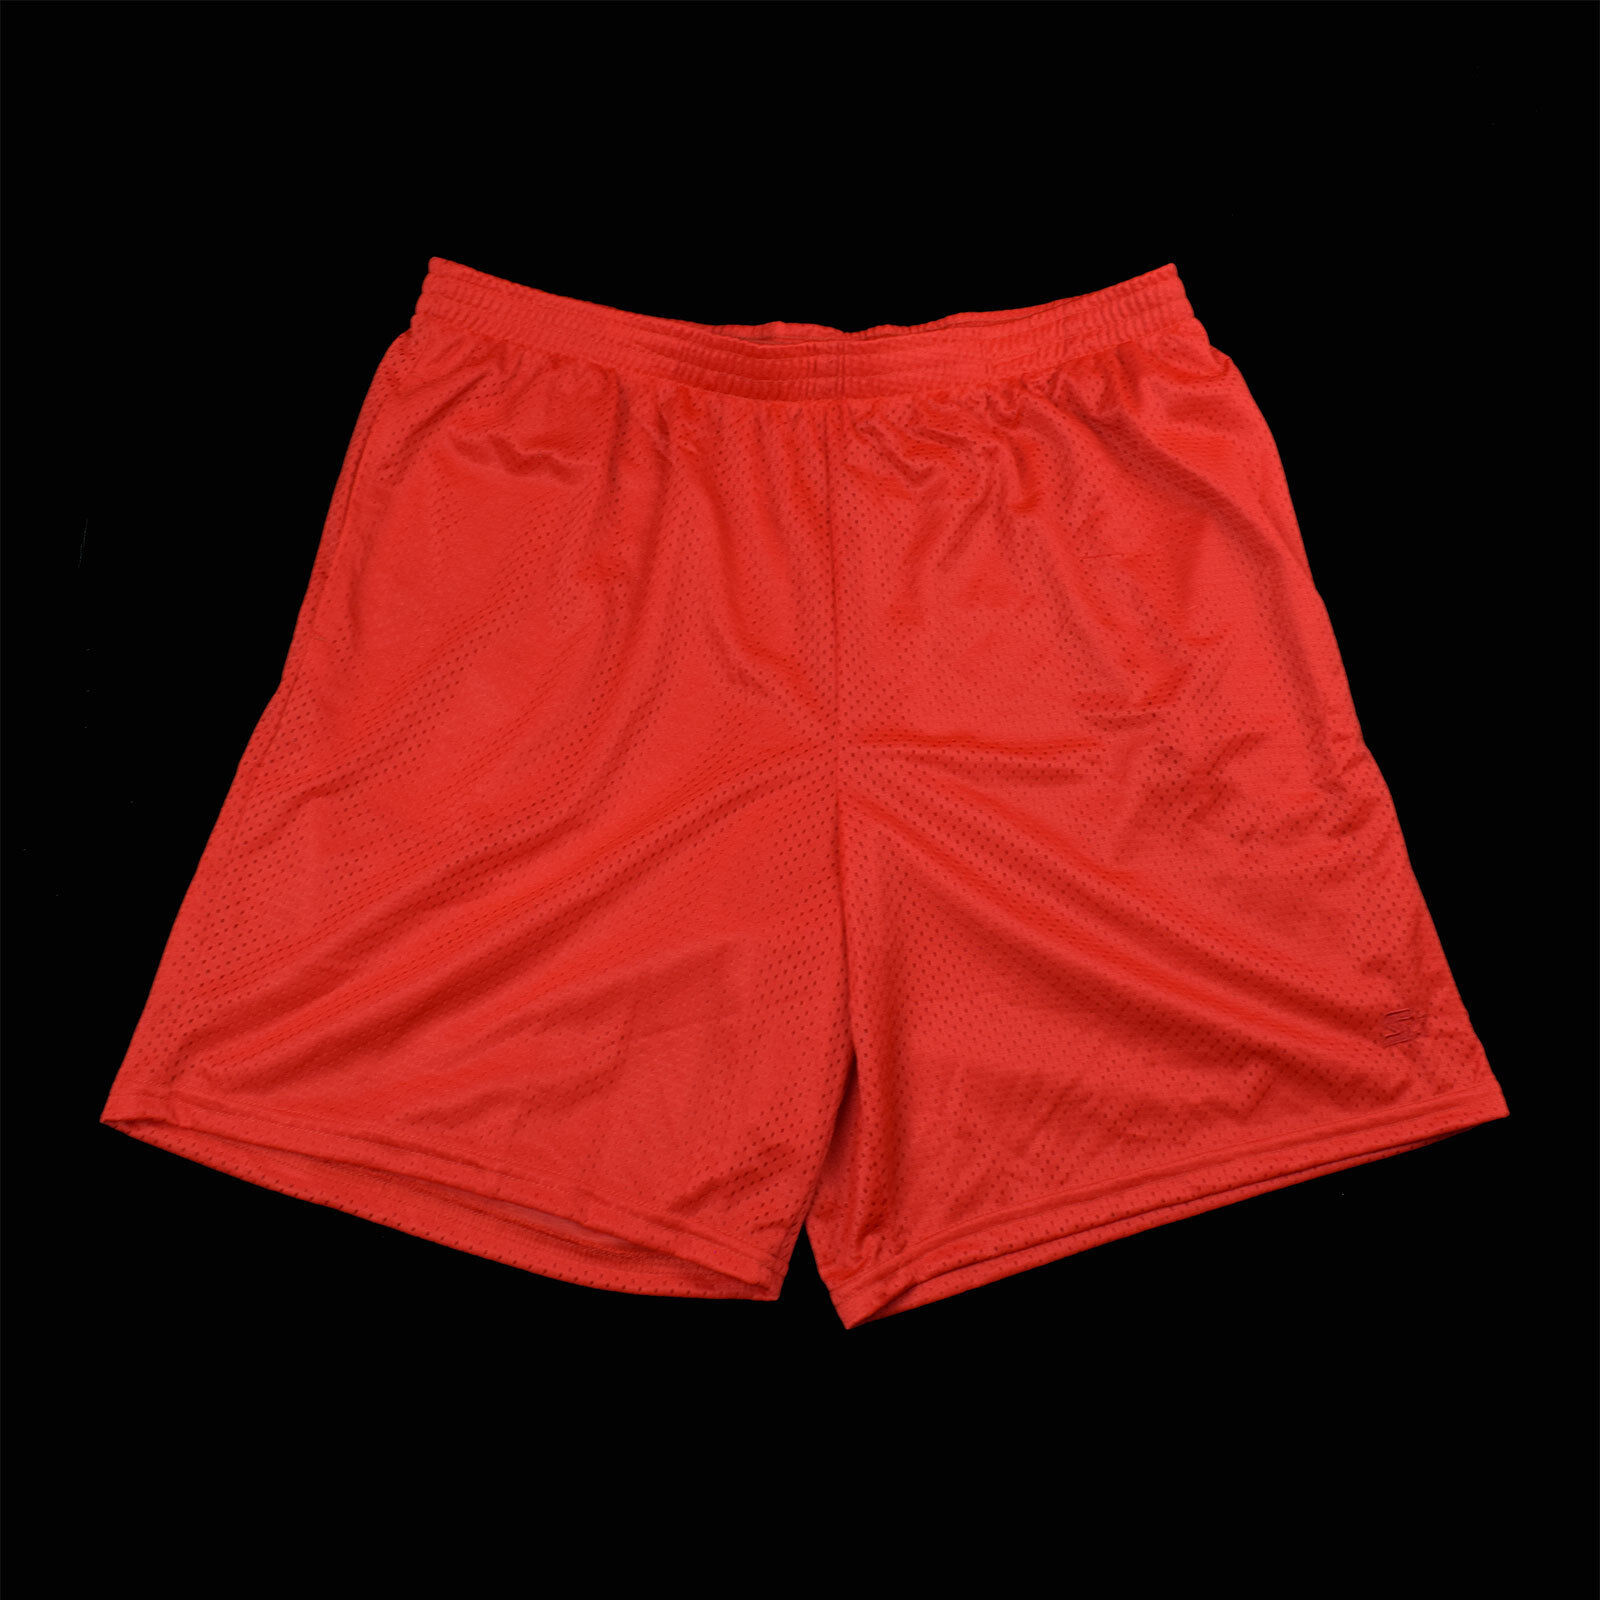 Starter Men's Athletic Shorts In Red Black & White